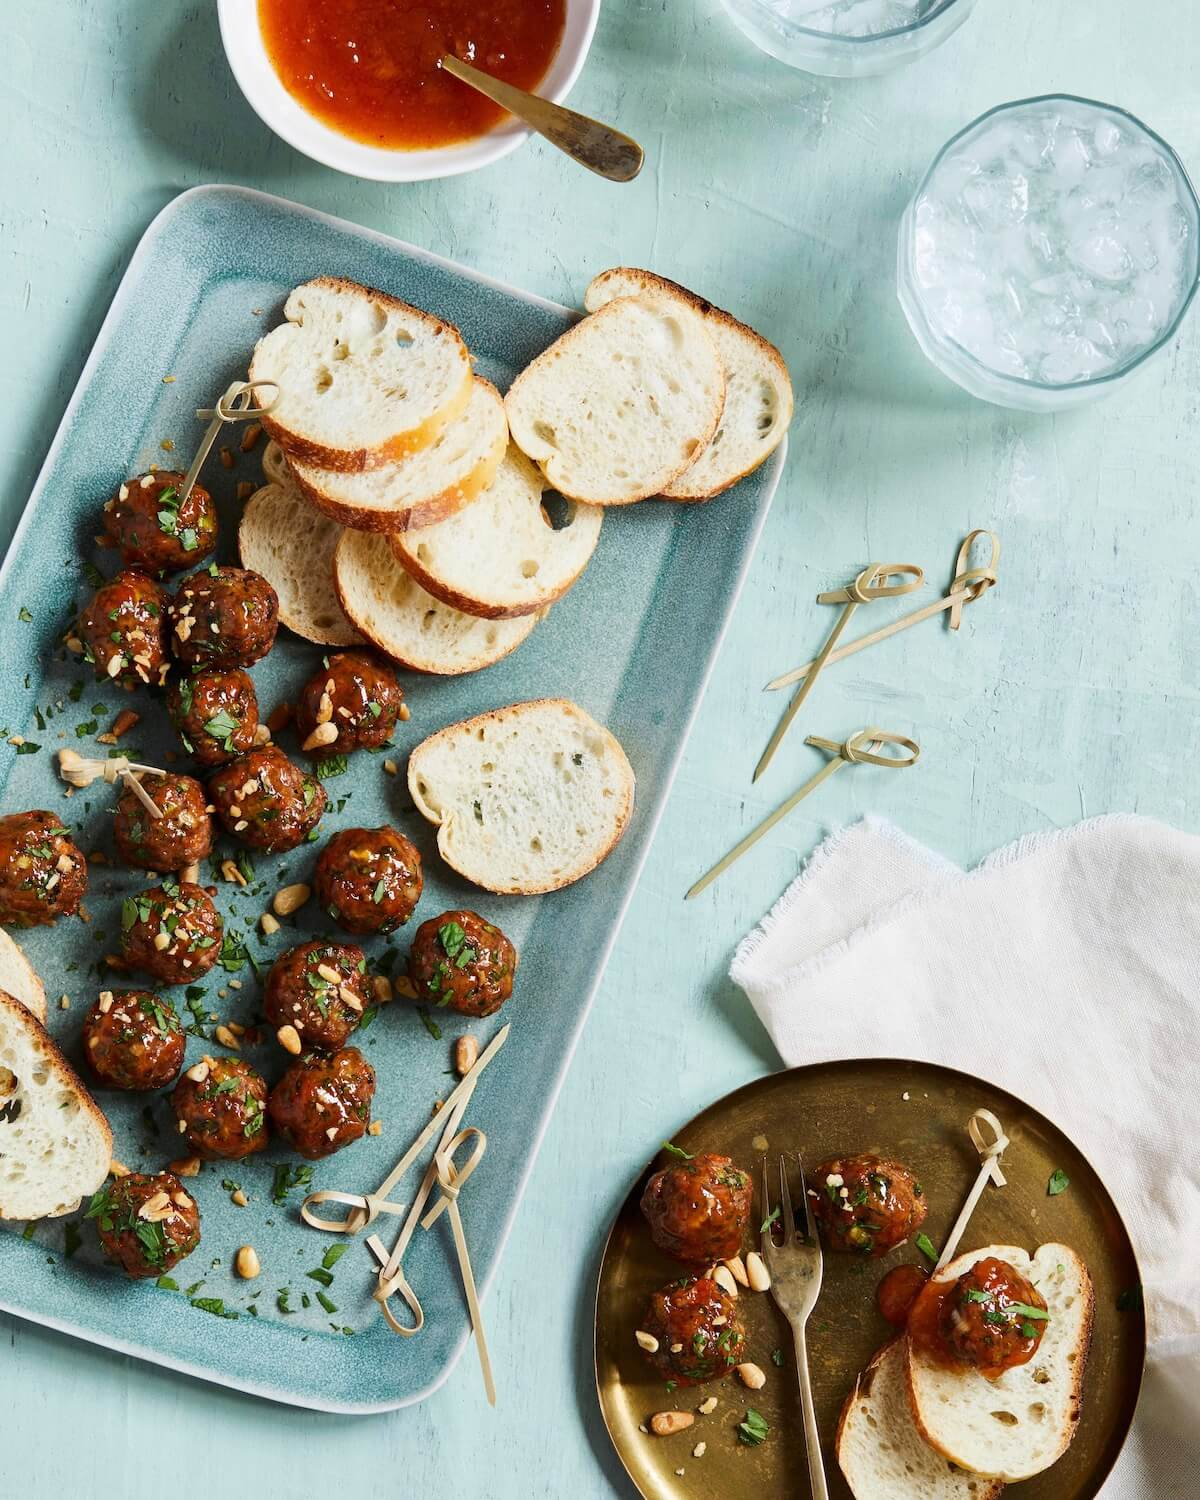 moroccan meatballs for dinner or snack